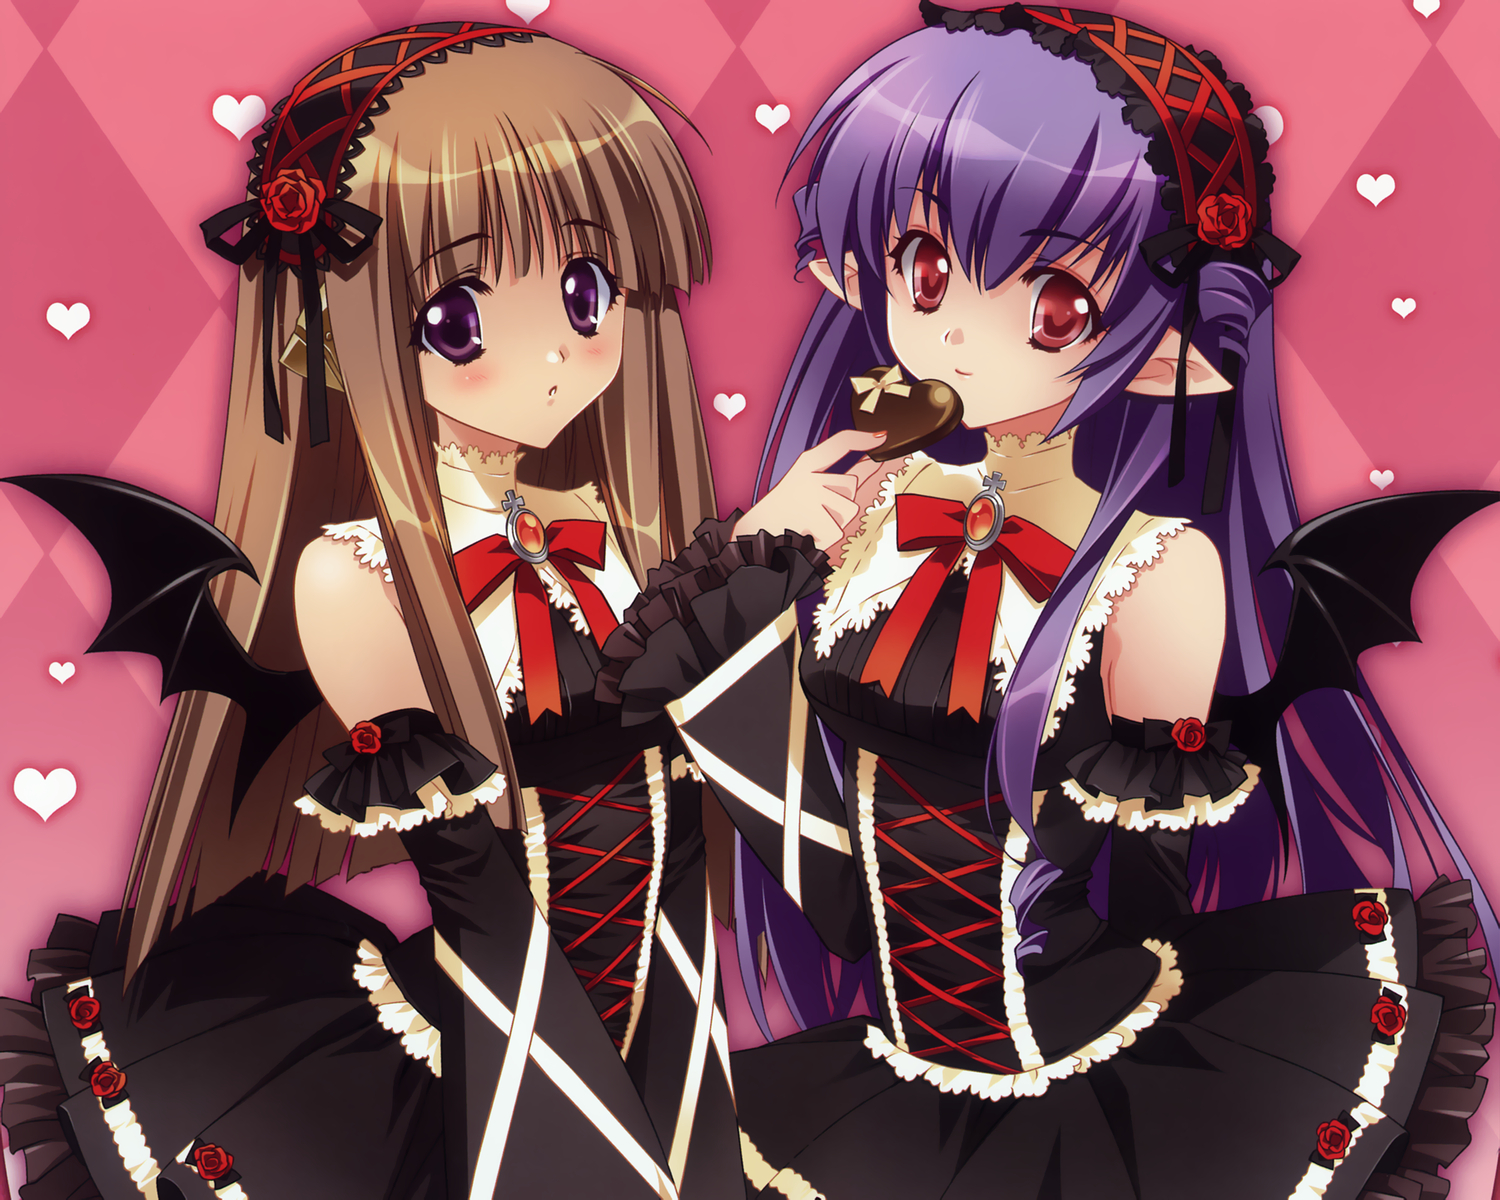 2girls brown_hair carnelian elf heart lolita_fashion long_hair original purple_eyes purple_hair red_eyes tail valentine wings